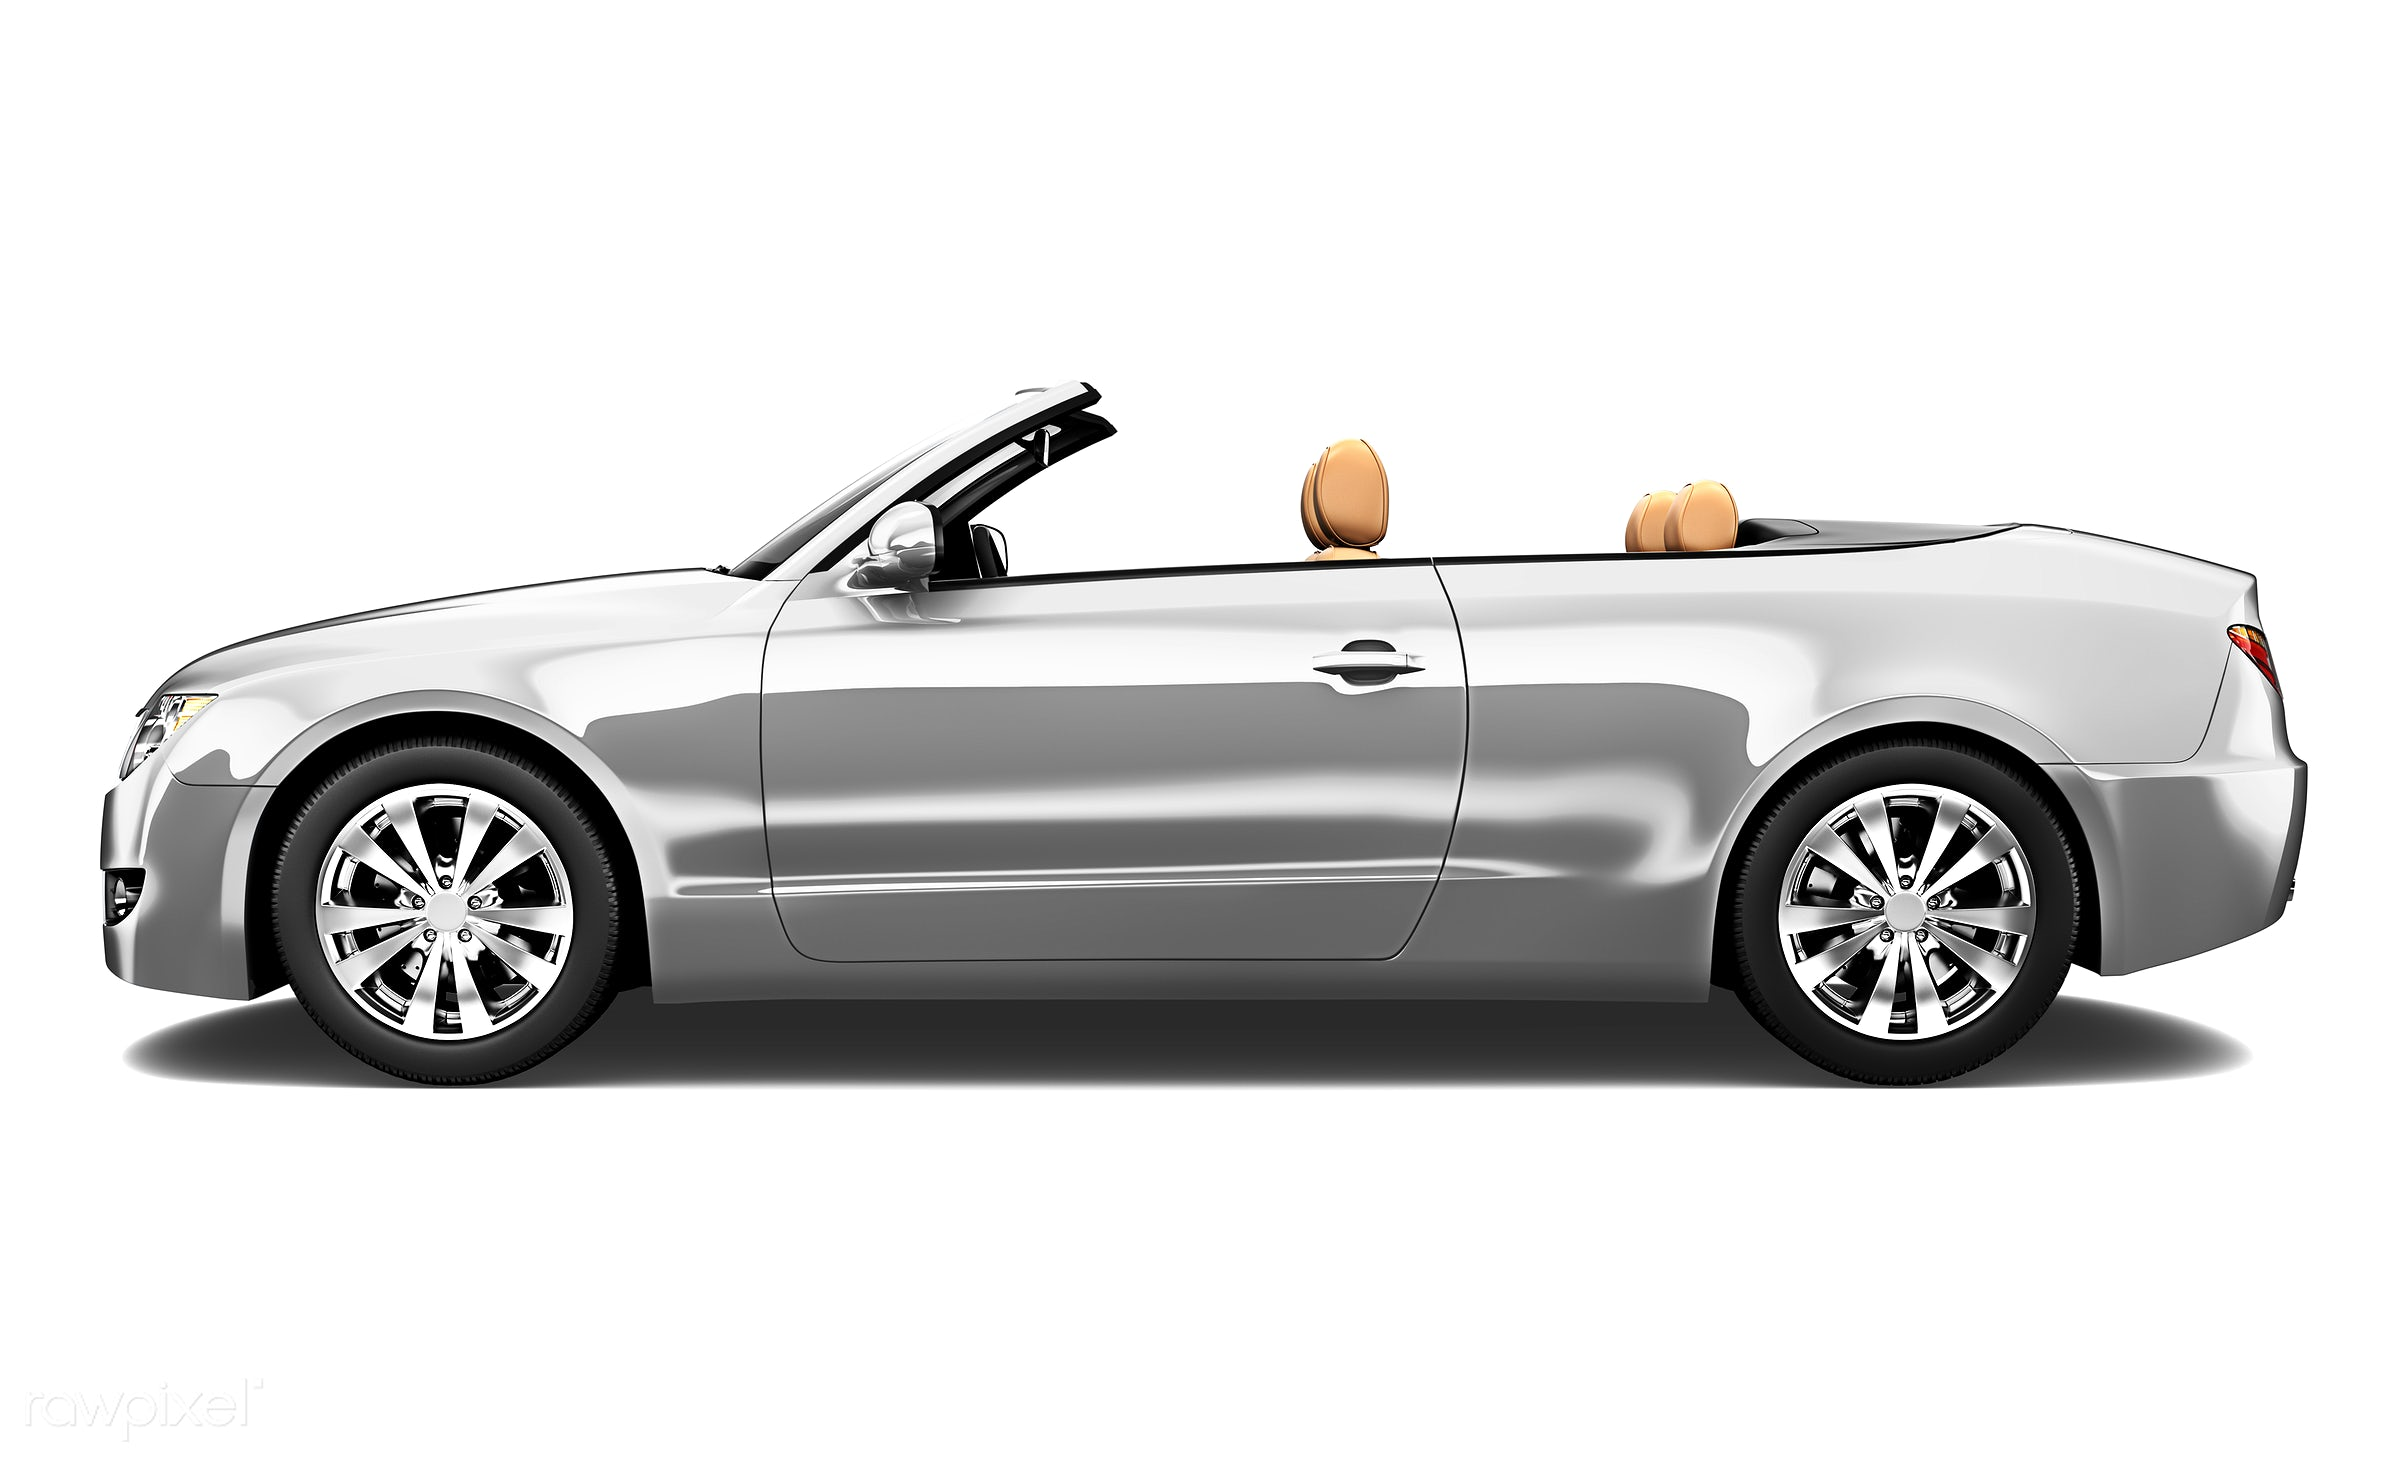 Three dimensional image of car - car, 3d, automobile, automotive, brandless, concept car, graphic, grey, holiday,...